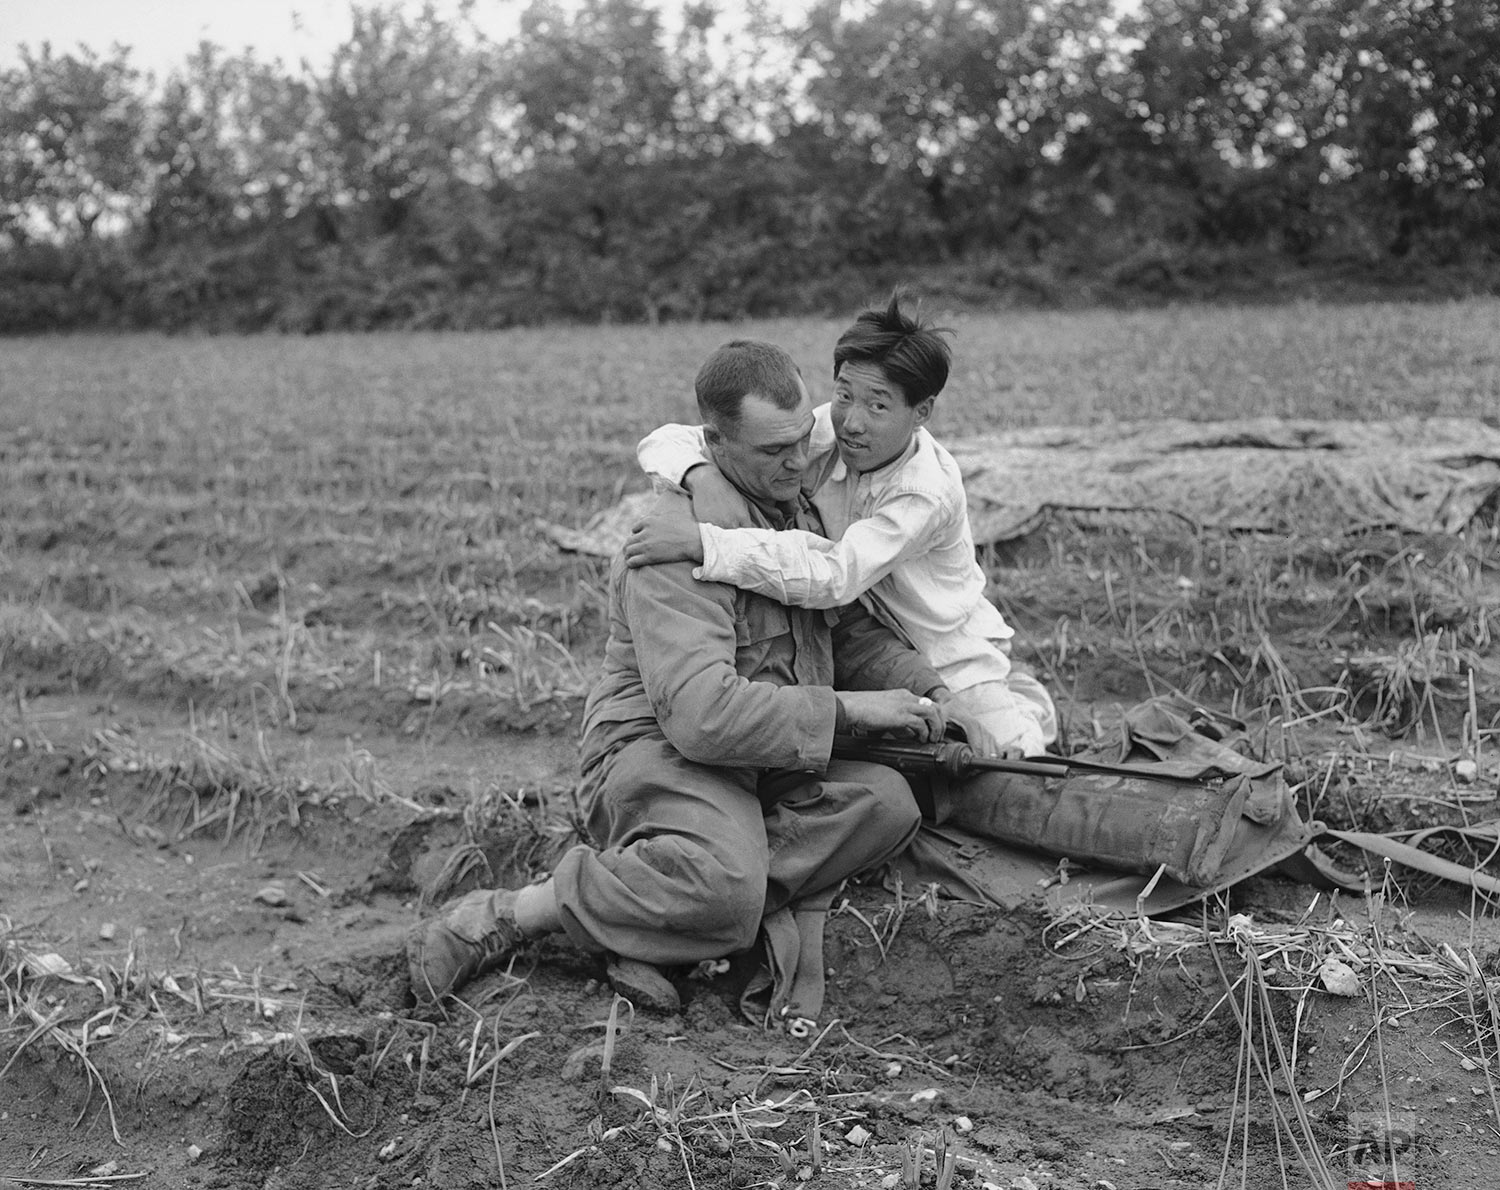 Paratrooper embraced by native after he hit ground in Sunchon, North Korea on Oct. 20, 1950. (AP Photo/Max Desfor)